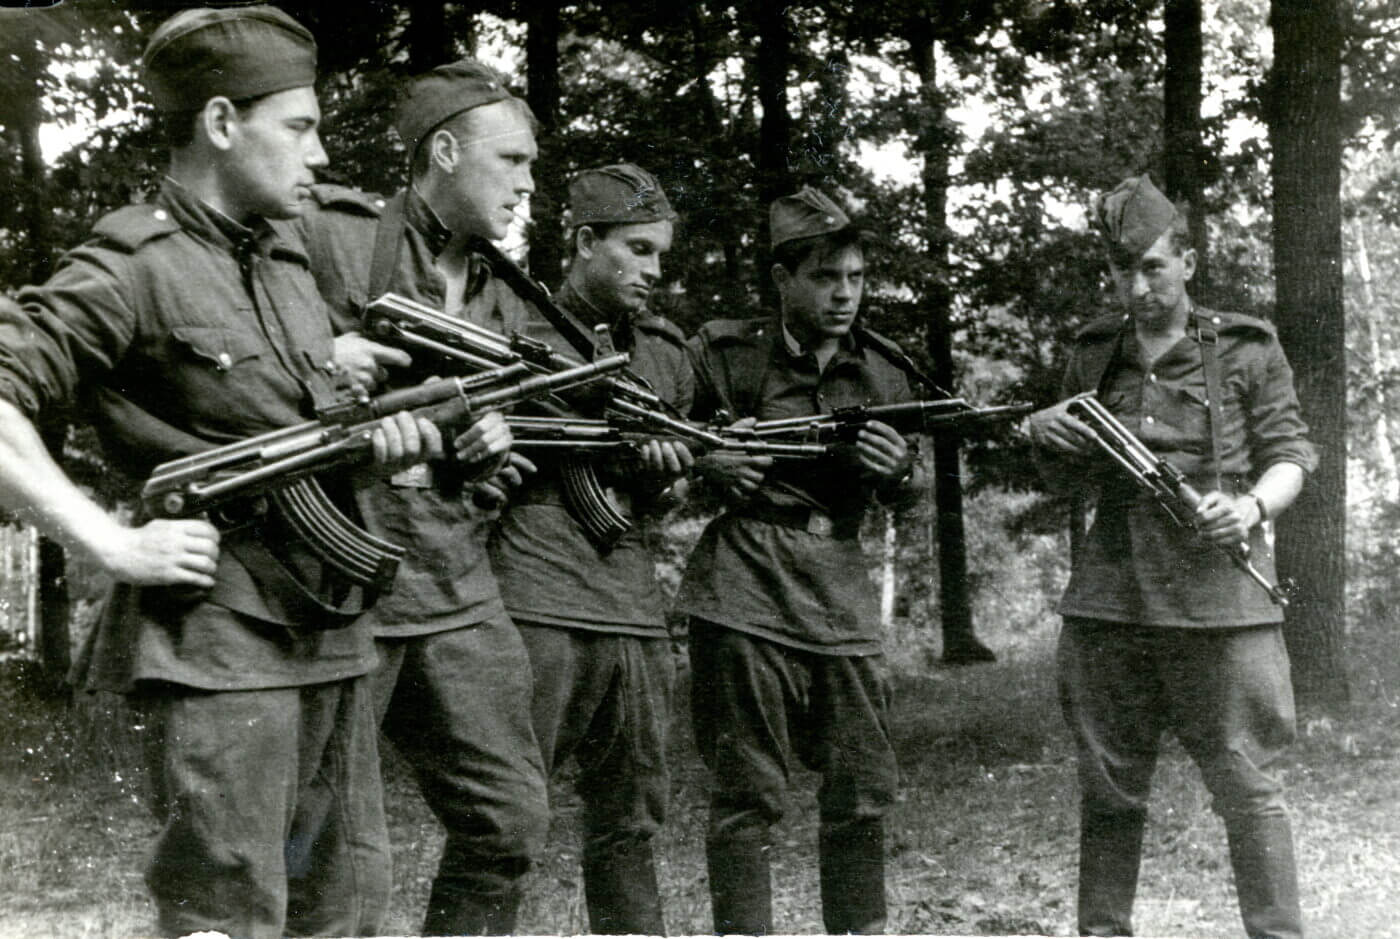 Soviet soldiers with AK-47 rifles